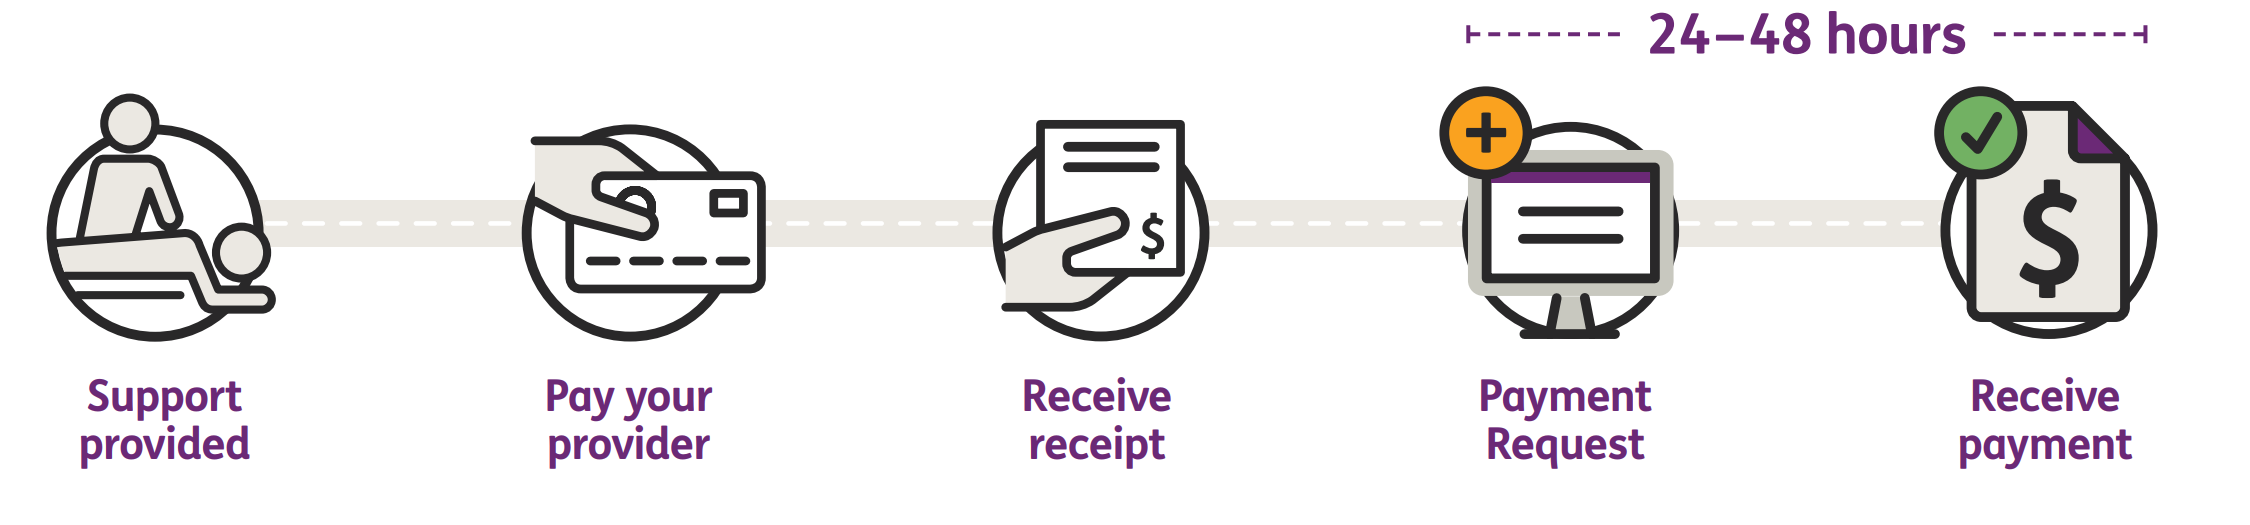 support provided icon- pay you provider icon - receive receipt - payment request icon - receive payment